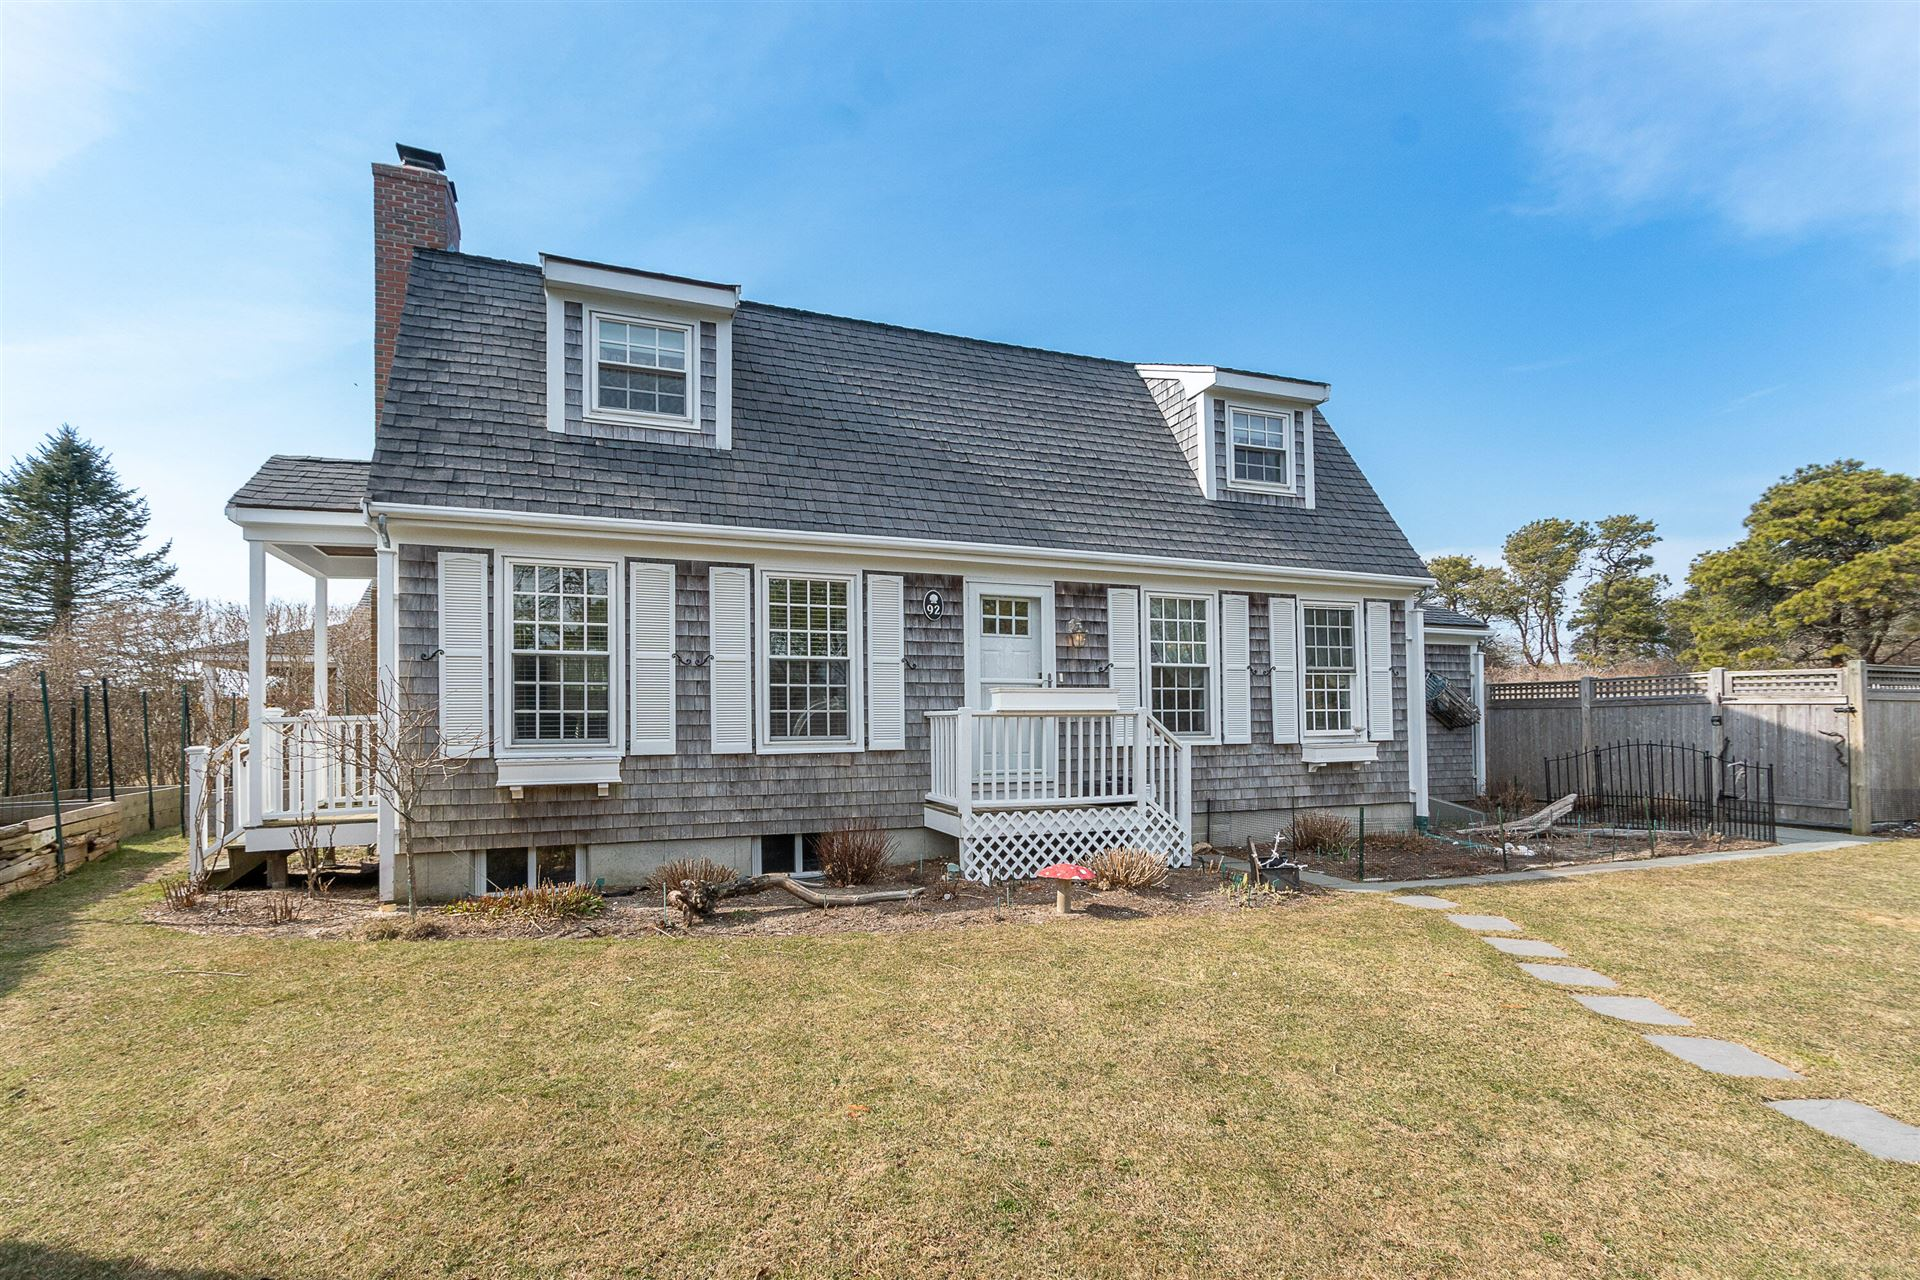 Photo of 92 Old South Road, Nantucket, MA 02554 (MLS # 22101182)